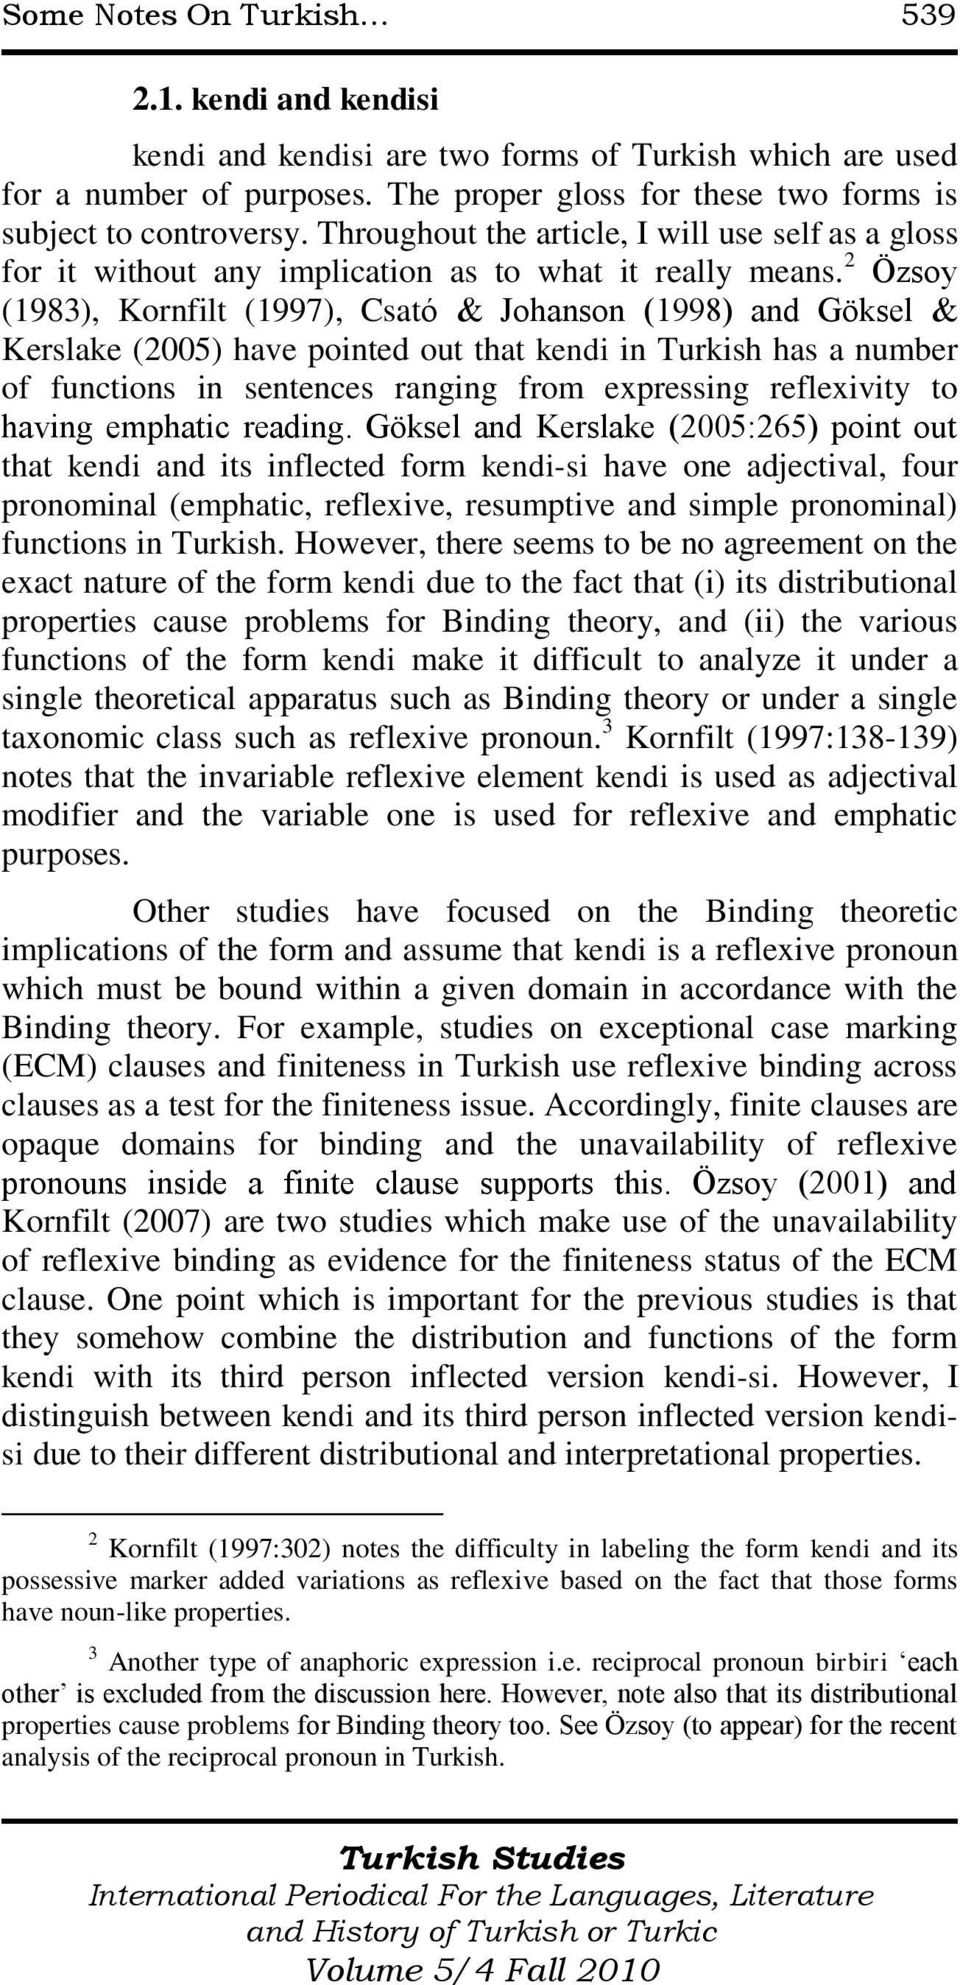 2 Özsoy (1983), Kornfilt (1997), Csató & Johanson (1998) and Göksel & Kerslake (2005) have pointed out that kendi in Turkish has a number of functions in sentences ranging from expressing reflexivity